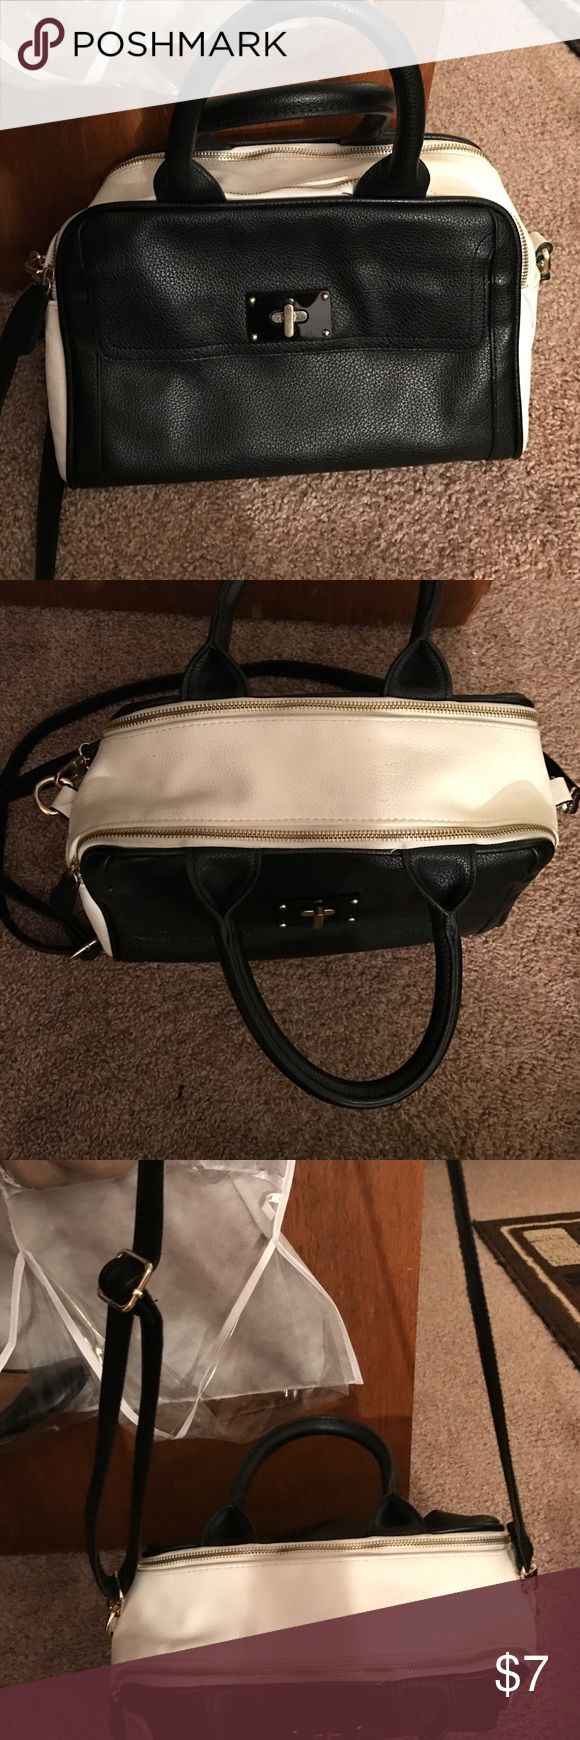 Black and white bag Nice medium size black and white purse o Merona Bags Shoulder Bags